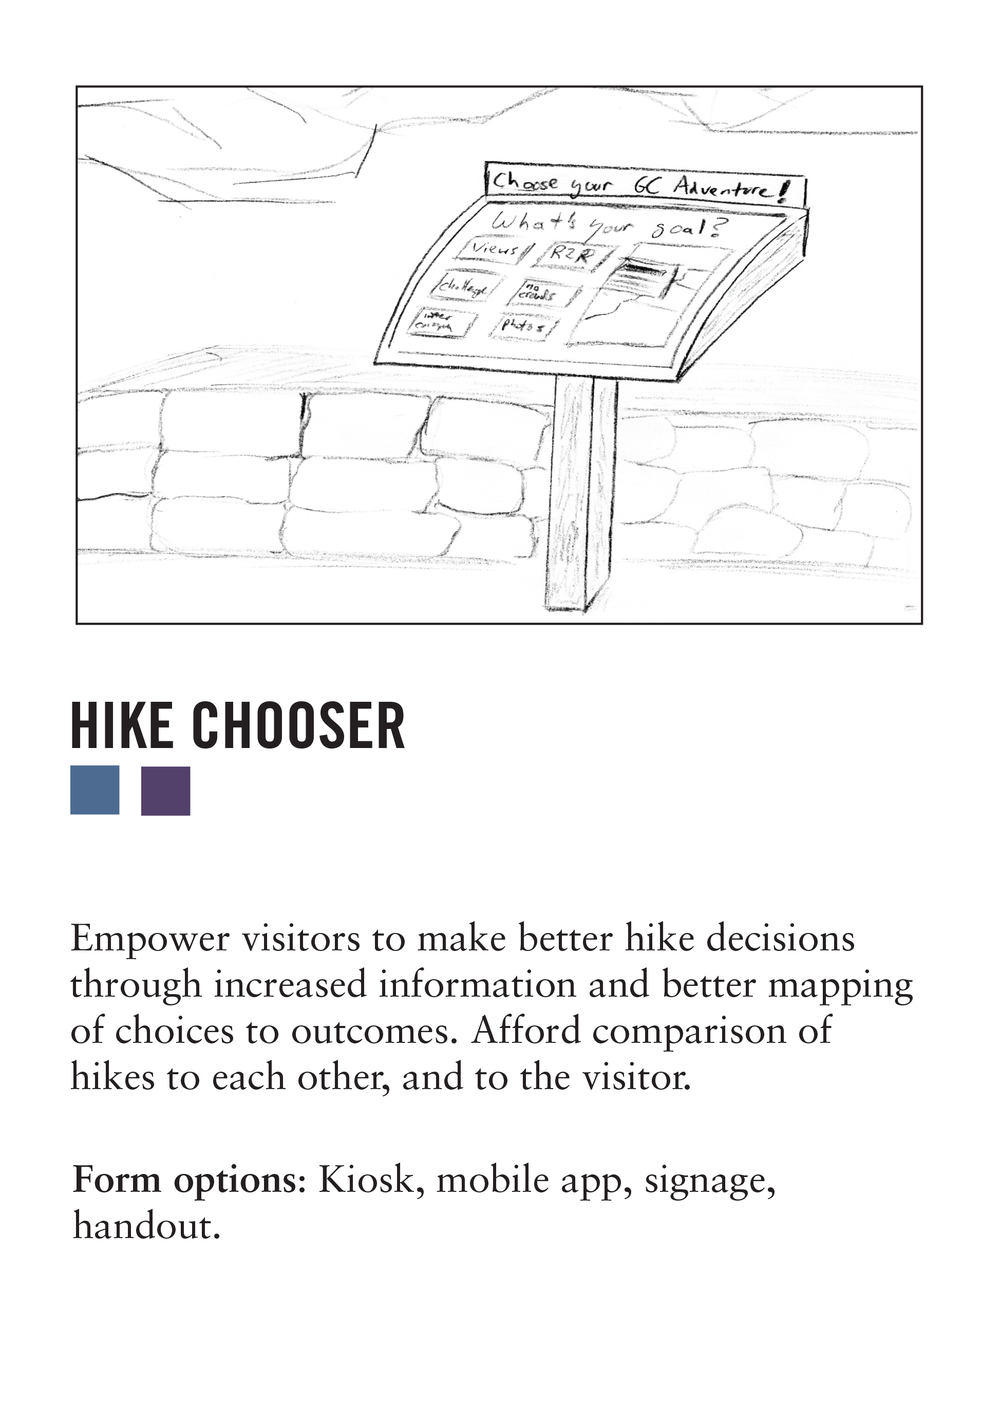 poster-hike-chooser.jpg